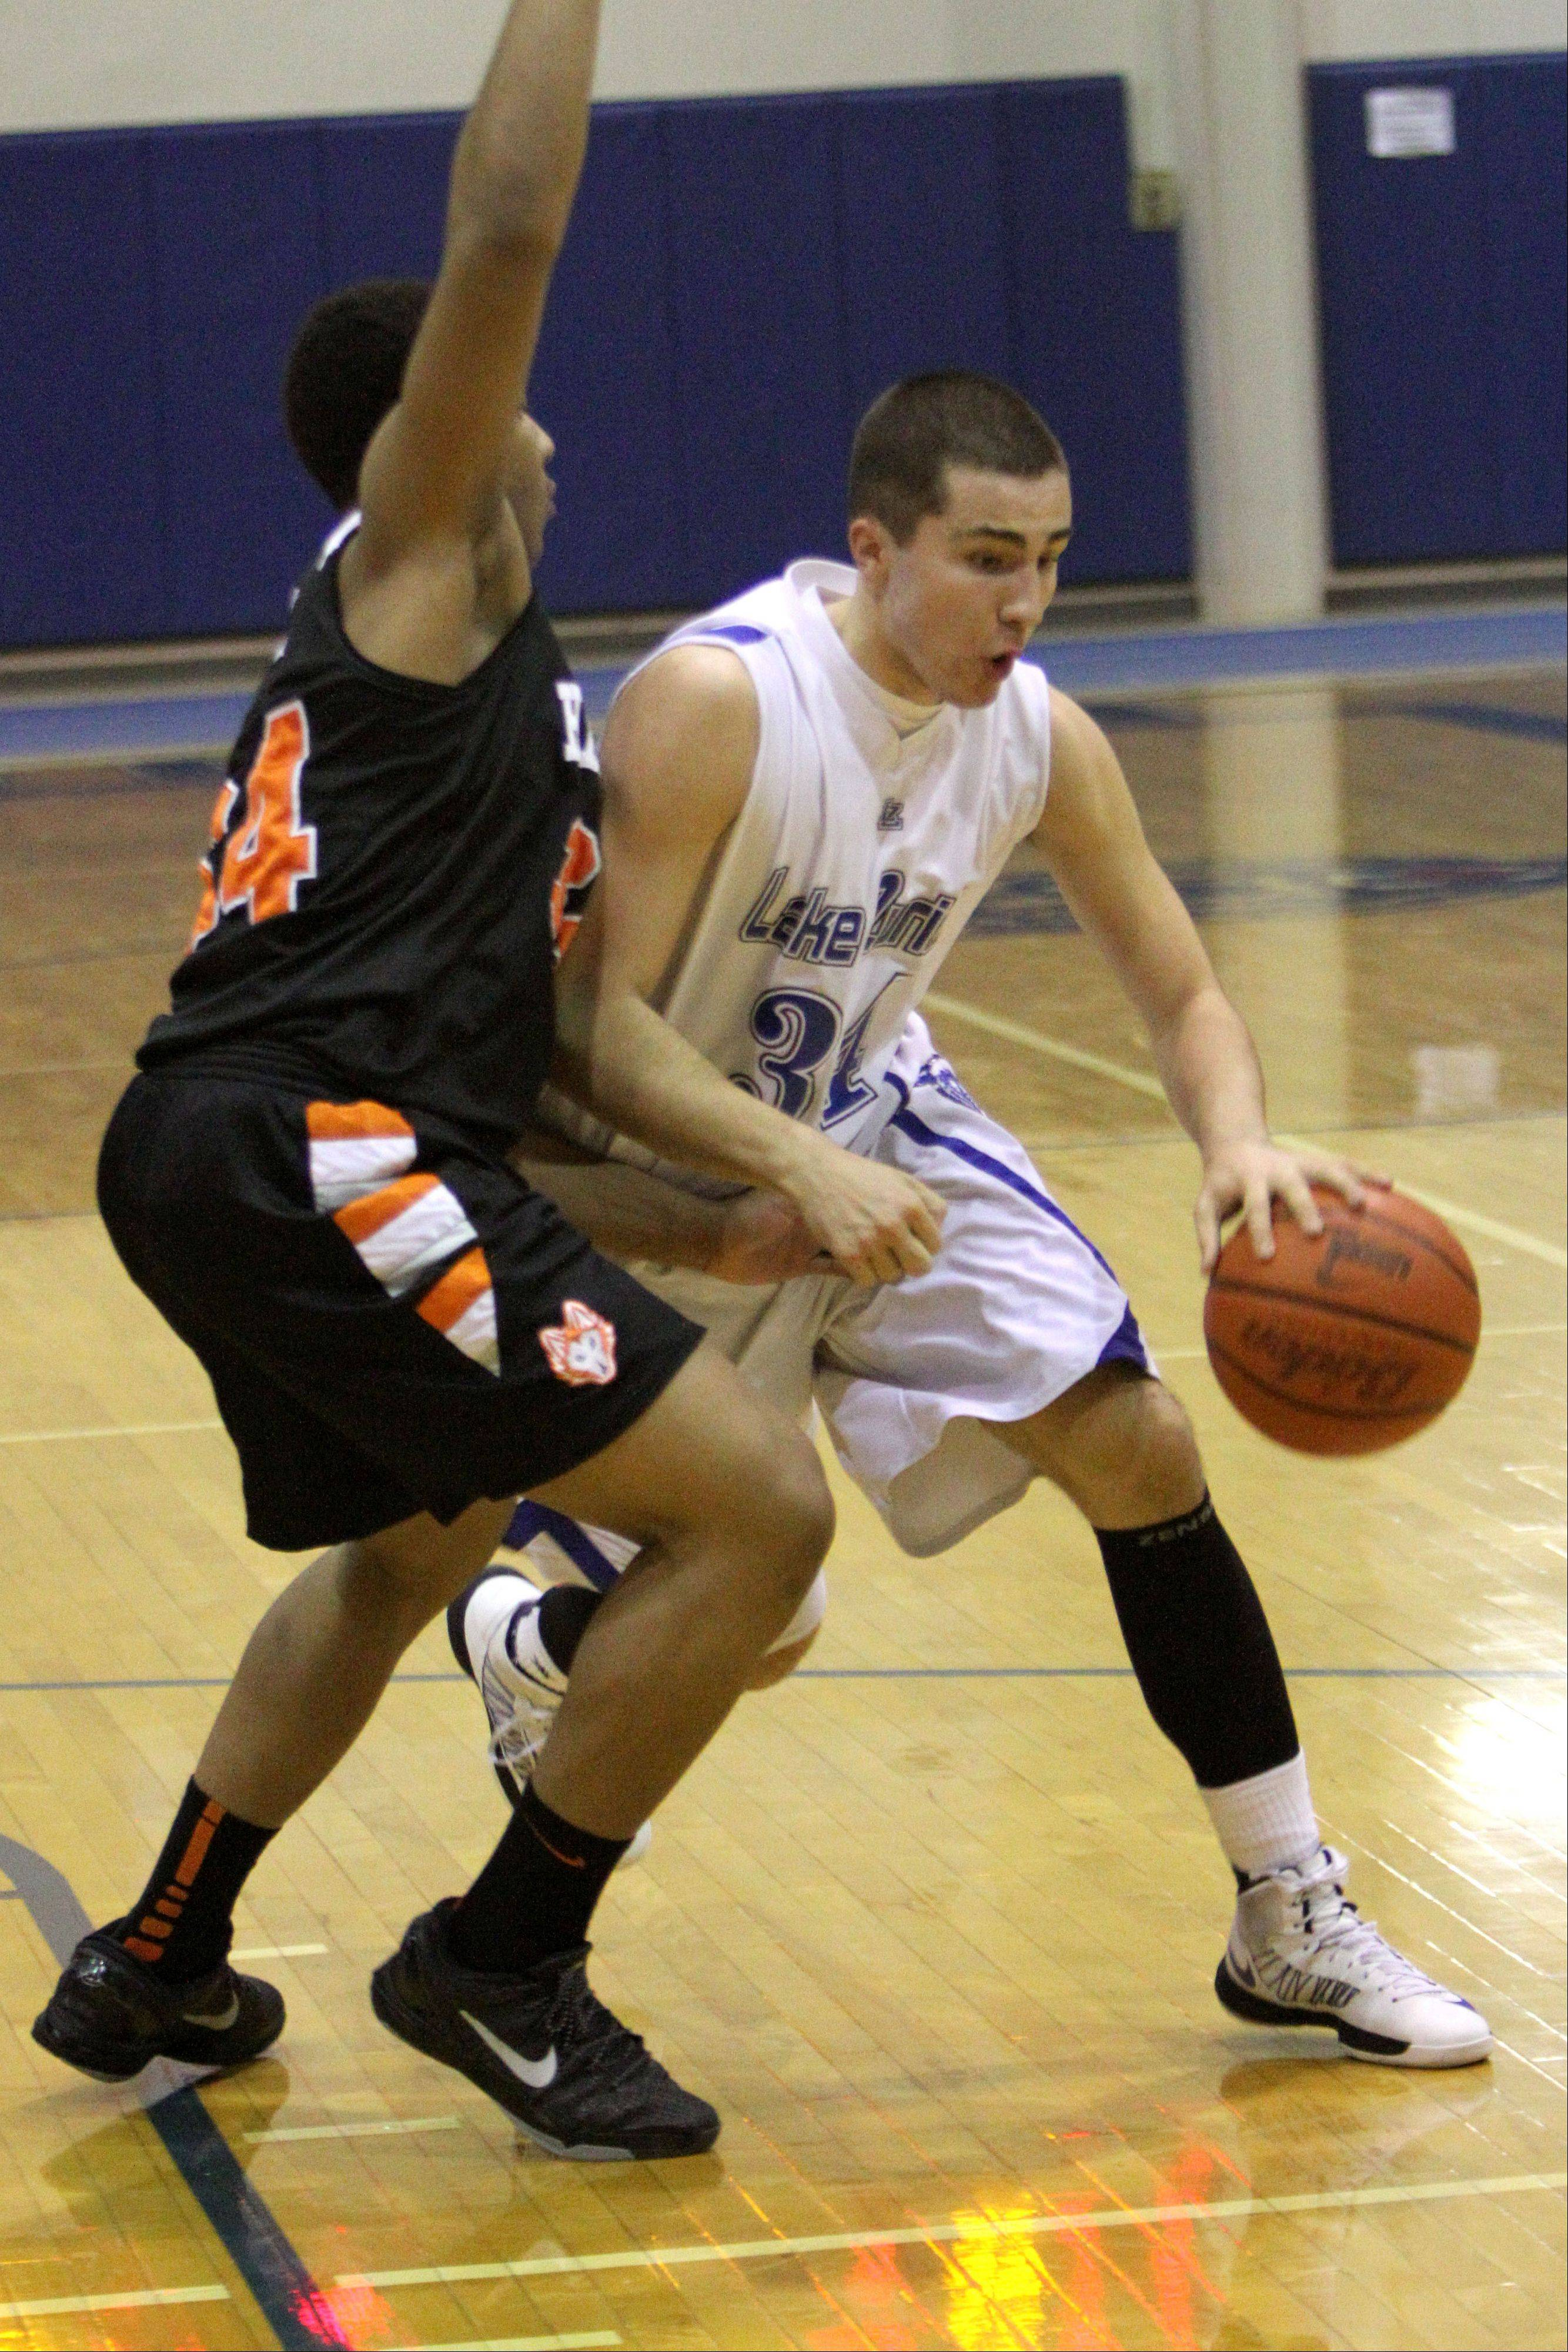 Images from the Harlem vs. Lake Zurich boys basketball game on Monday, Jan. 21 in Lake Zurich.